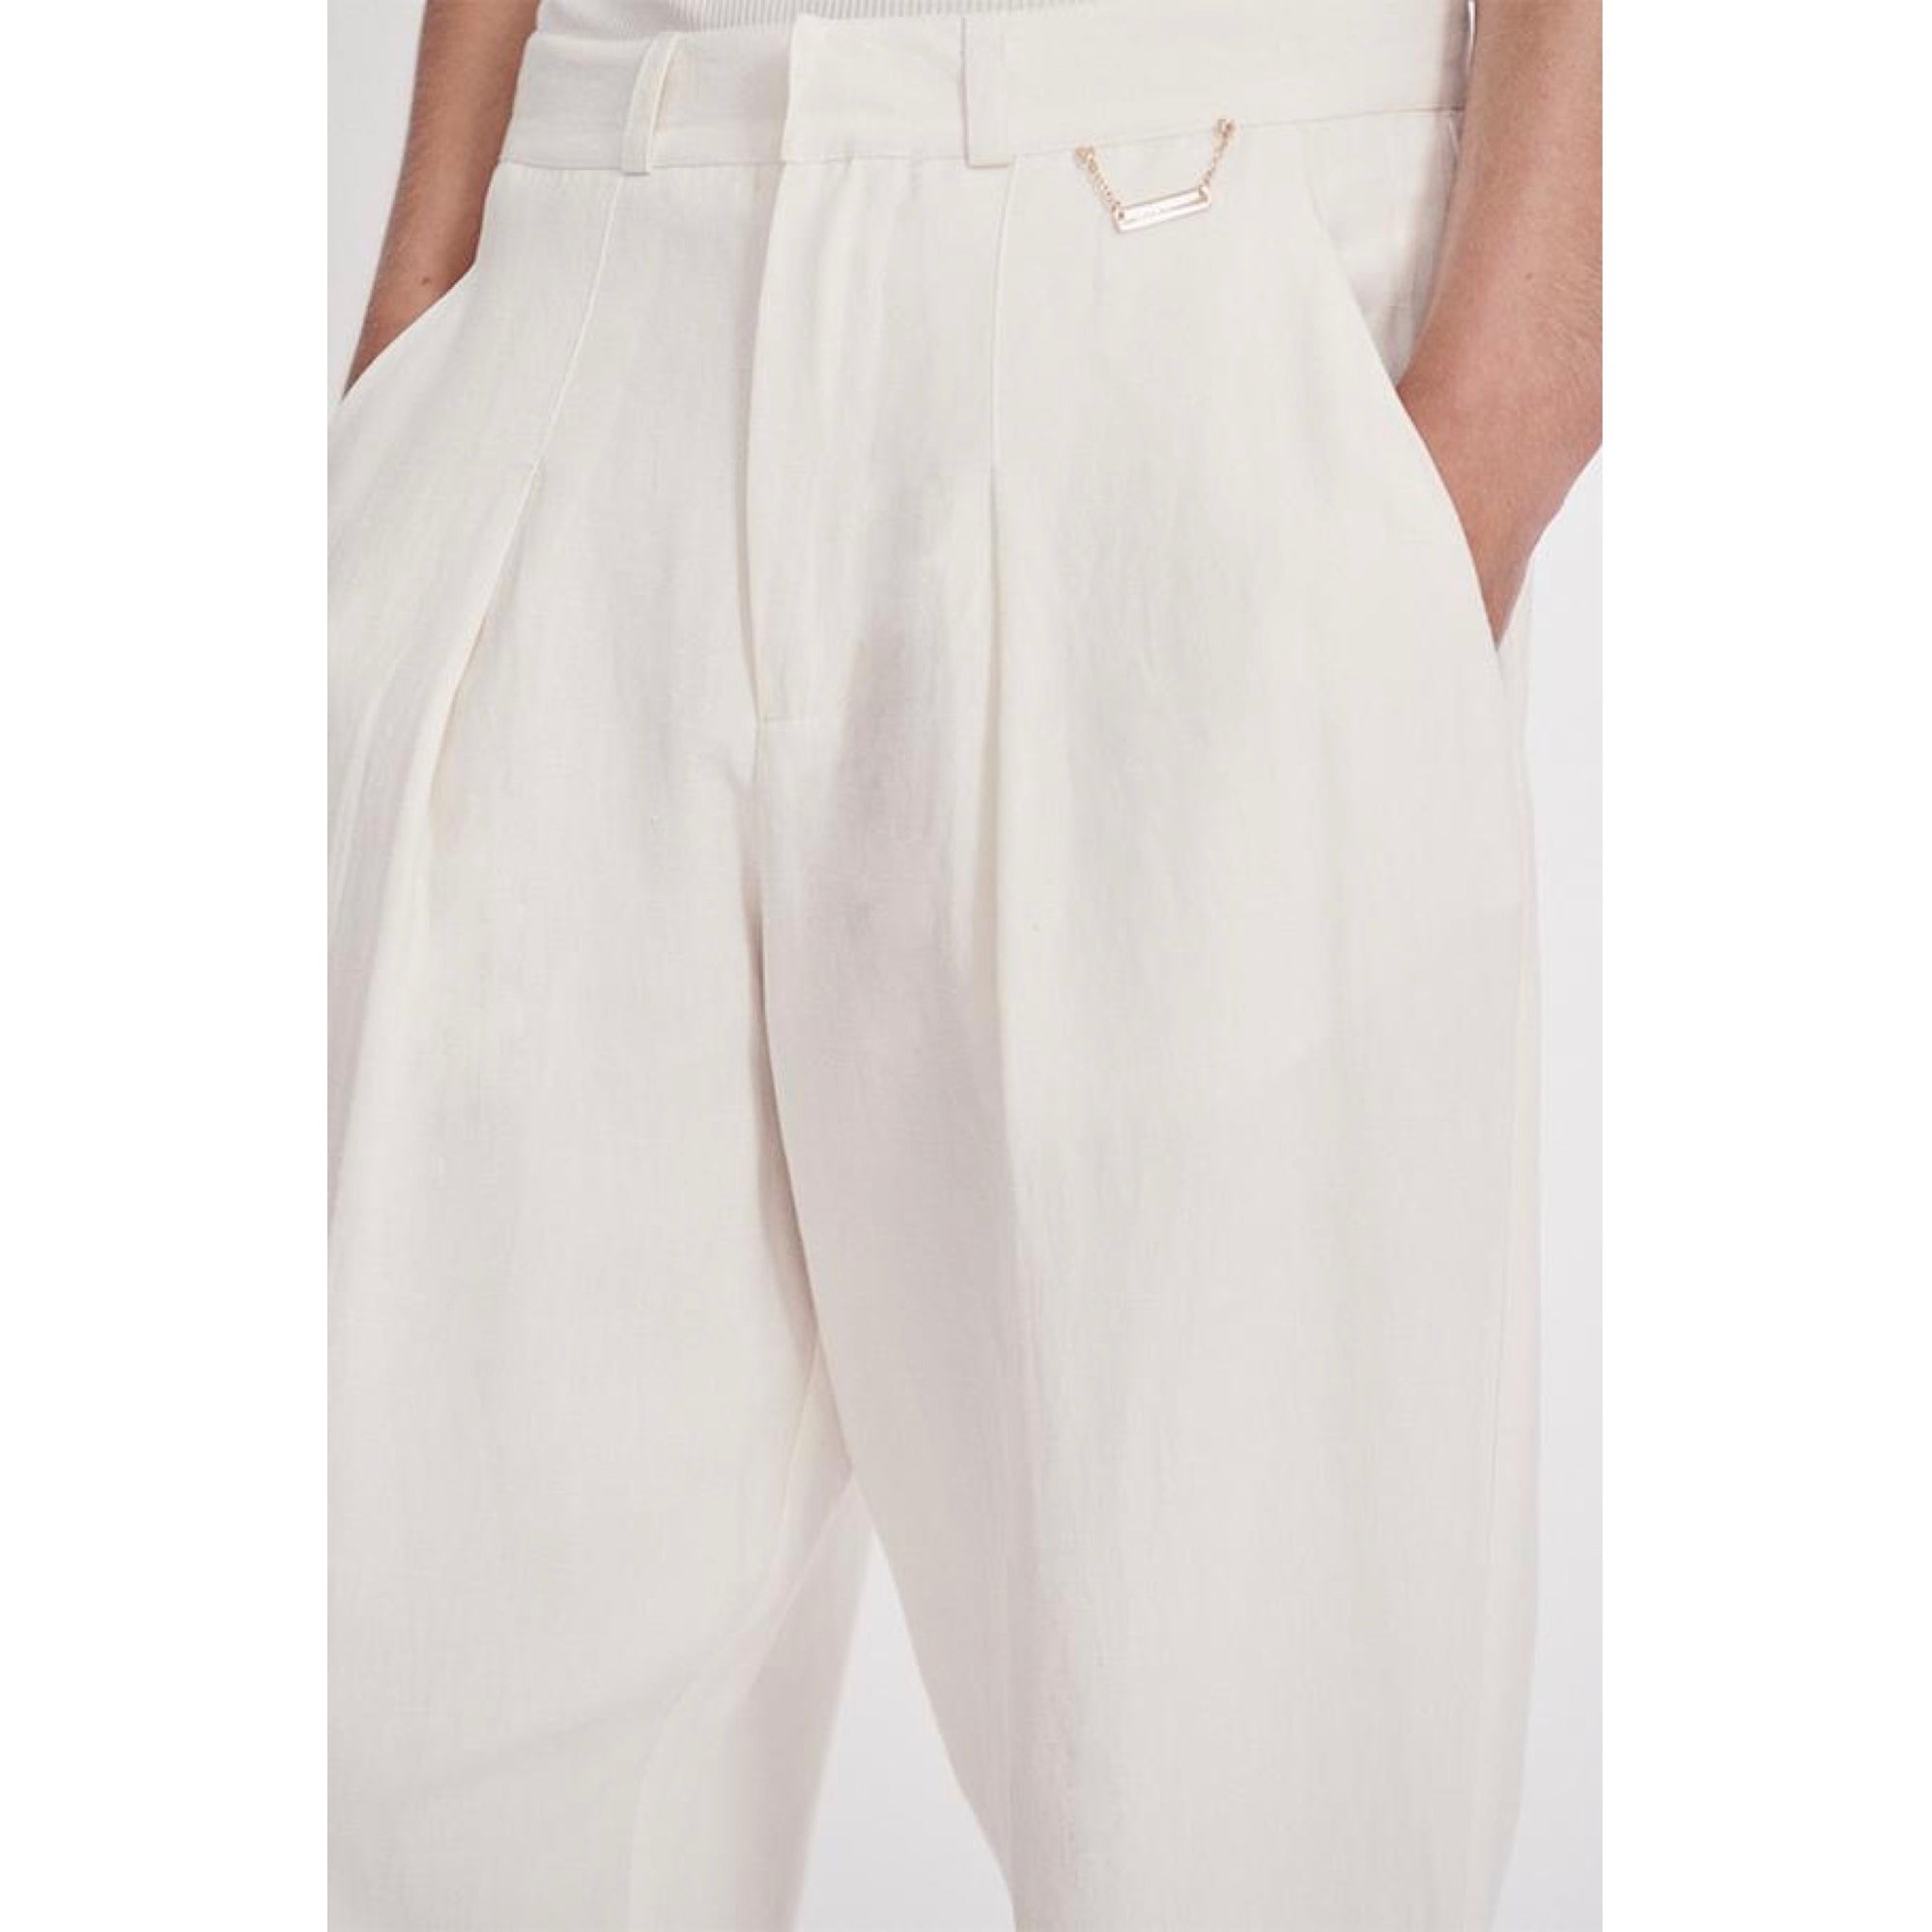 Silk Laundry Silk- Linen Trouser White